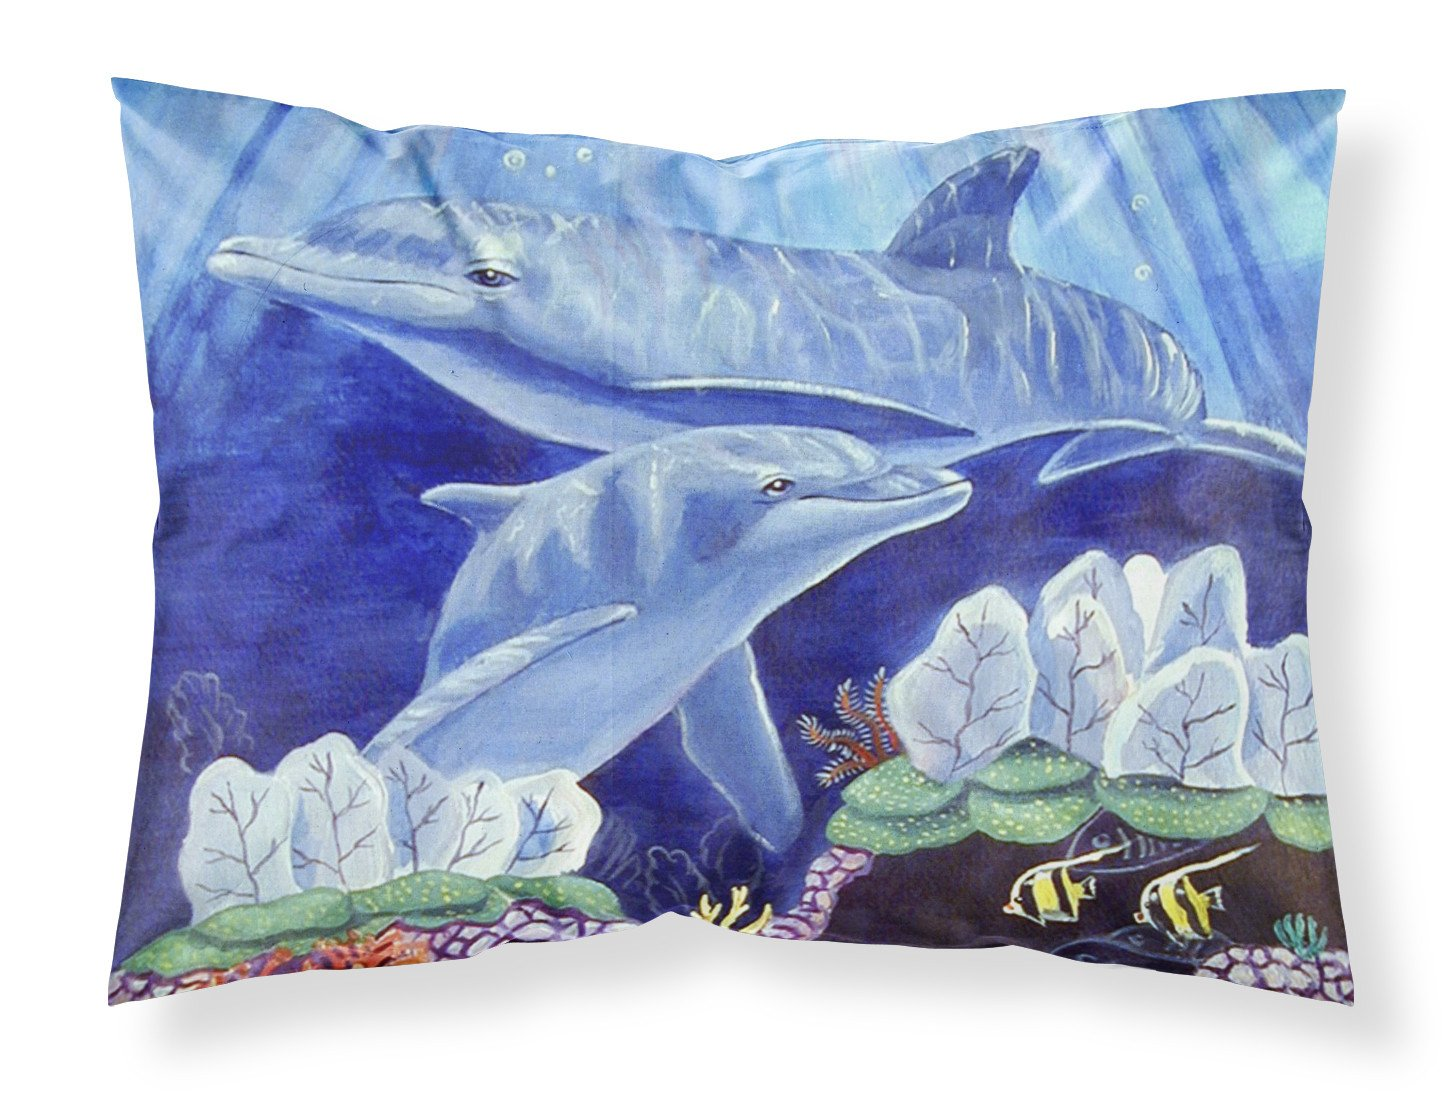 Dolphin under the sea Moisture wicking Fabric standard pillowcase by Caroline's Treasures